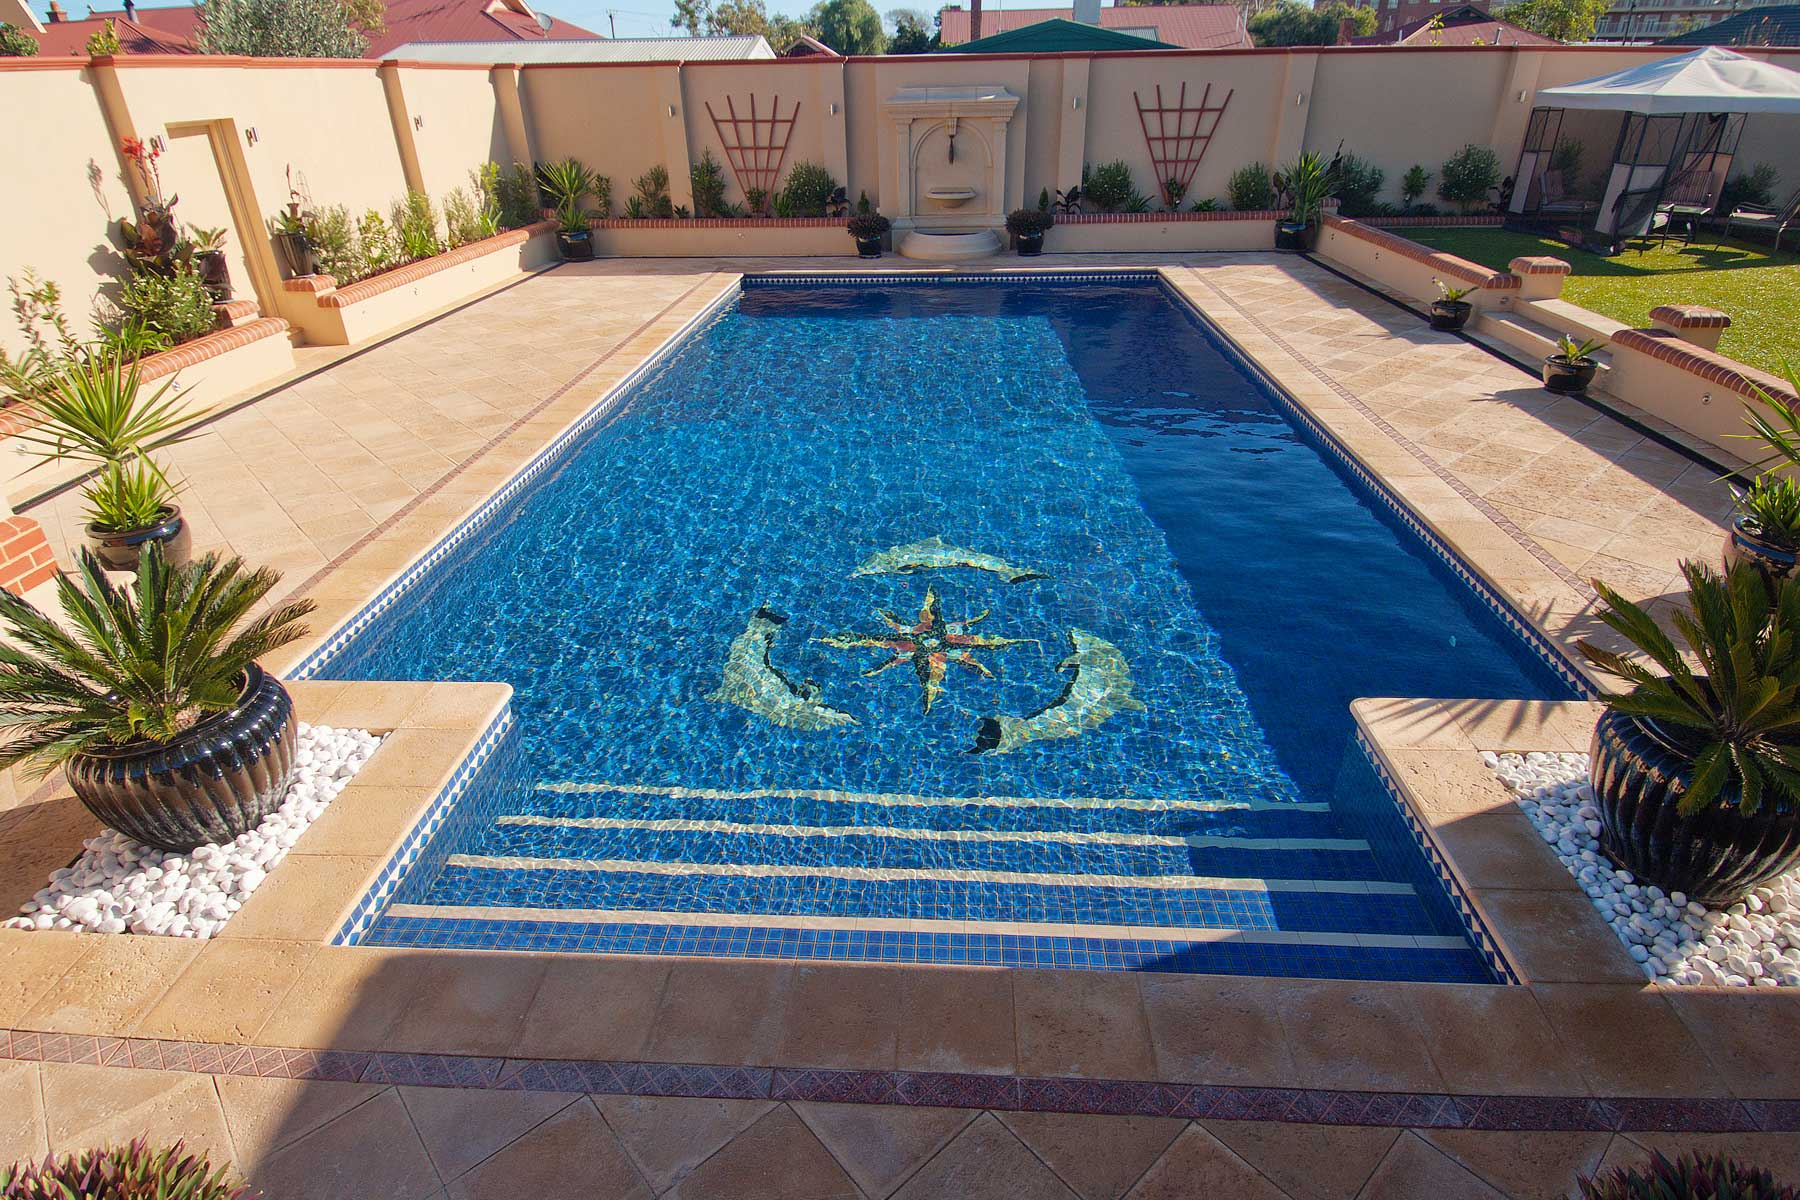 Concrete Pool with Ceramic Design - Peressin Pools